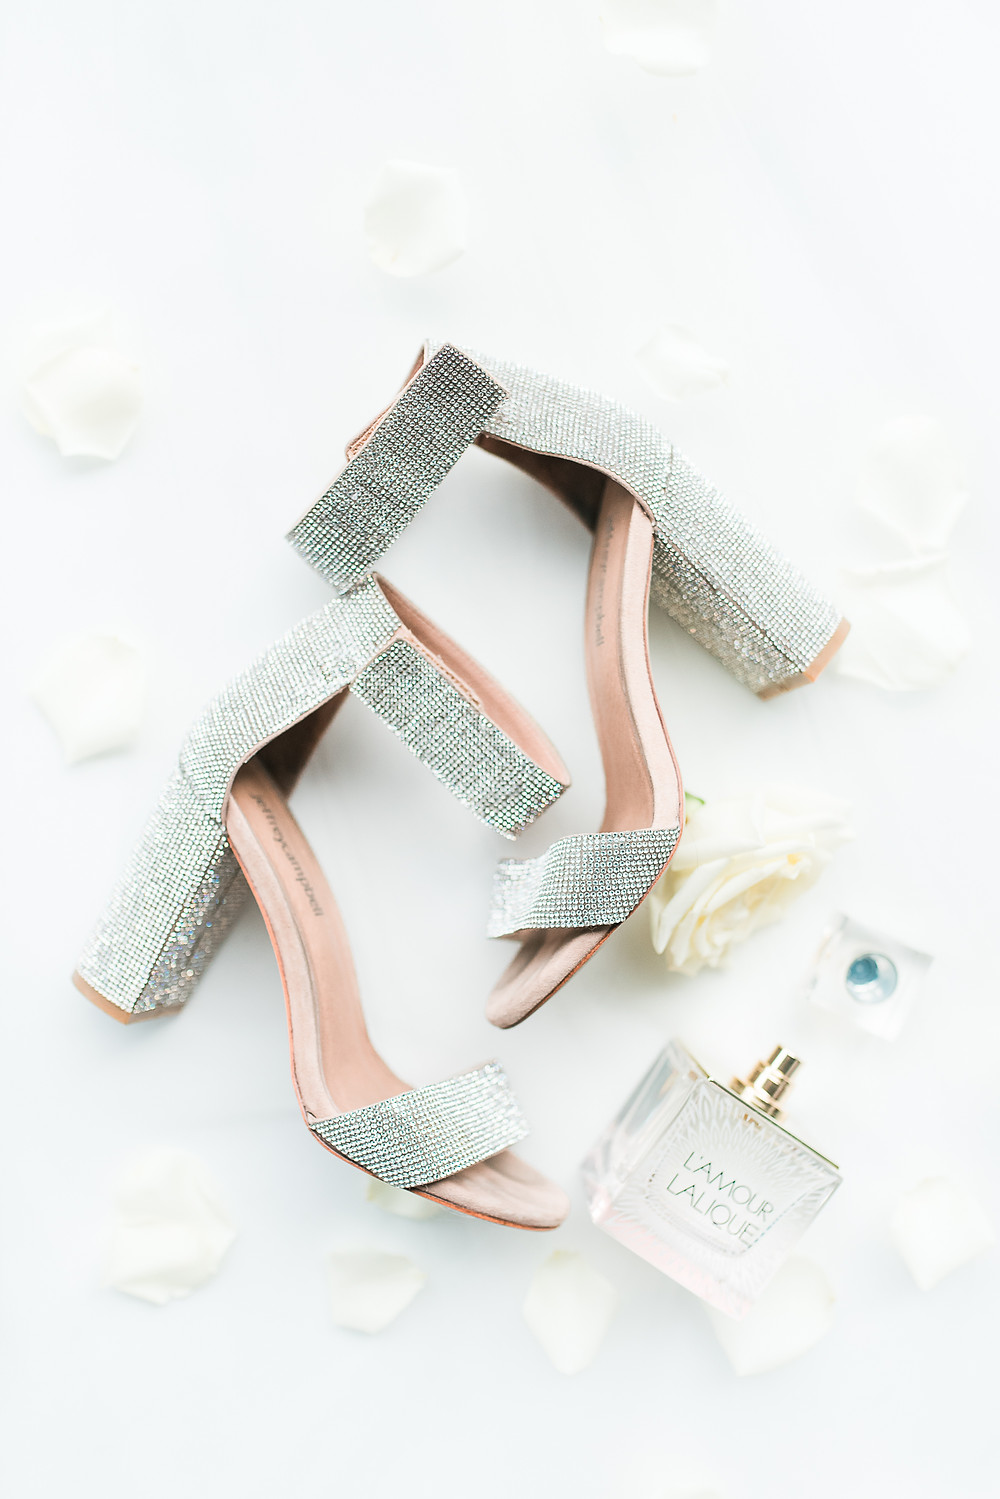 WEDDING SHOES LAT FLAY DESIGN PHOTOGRAPHER